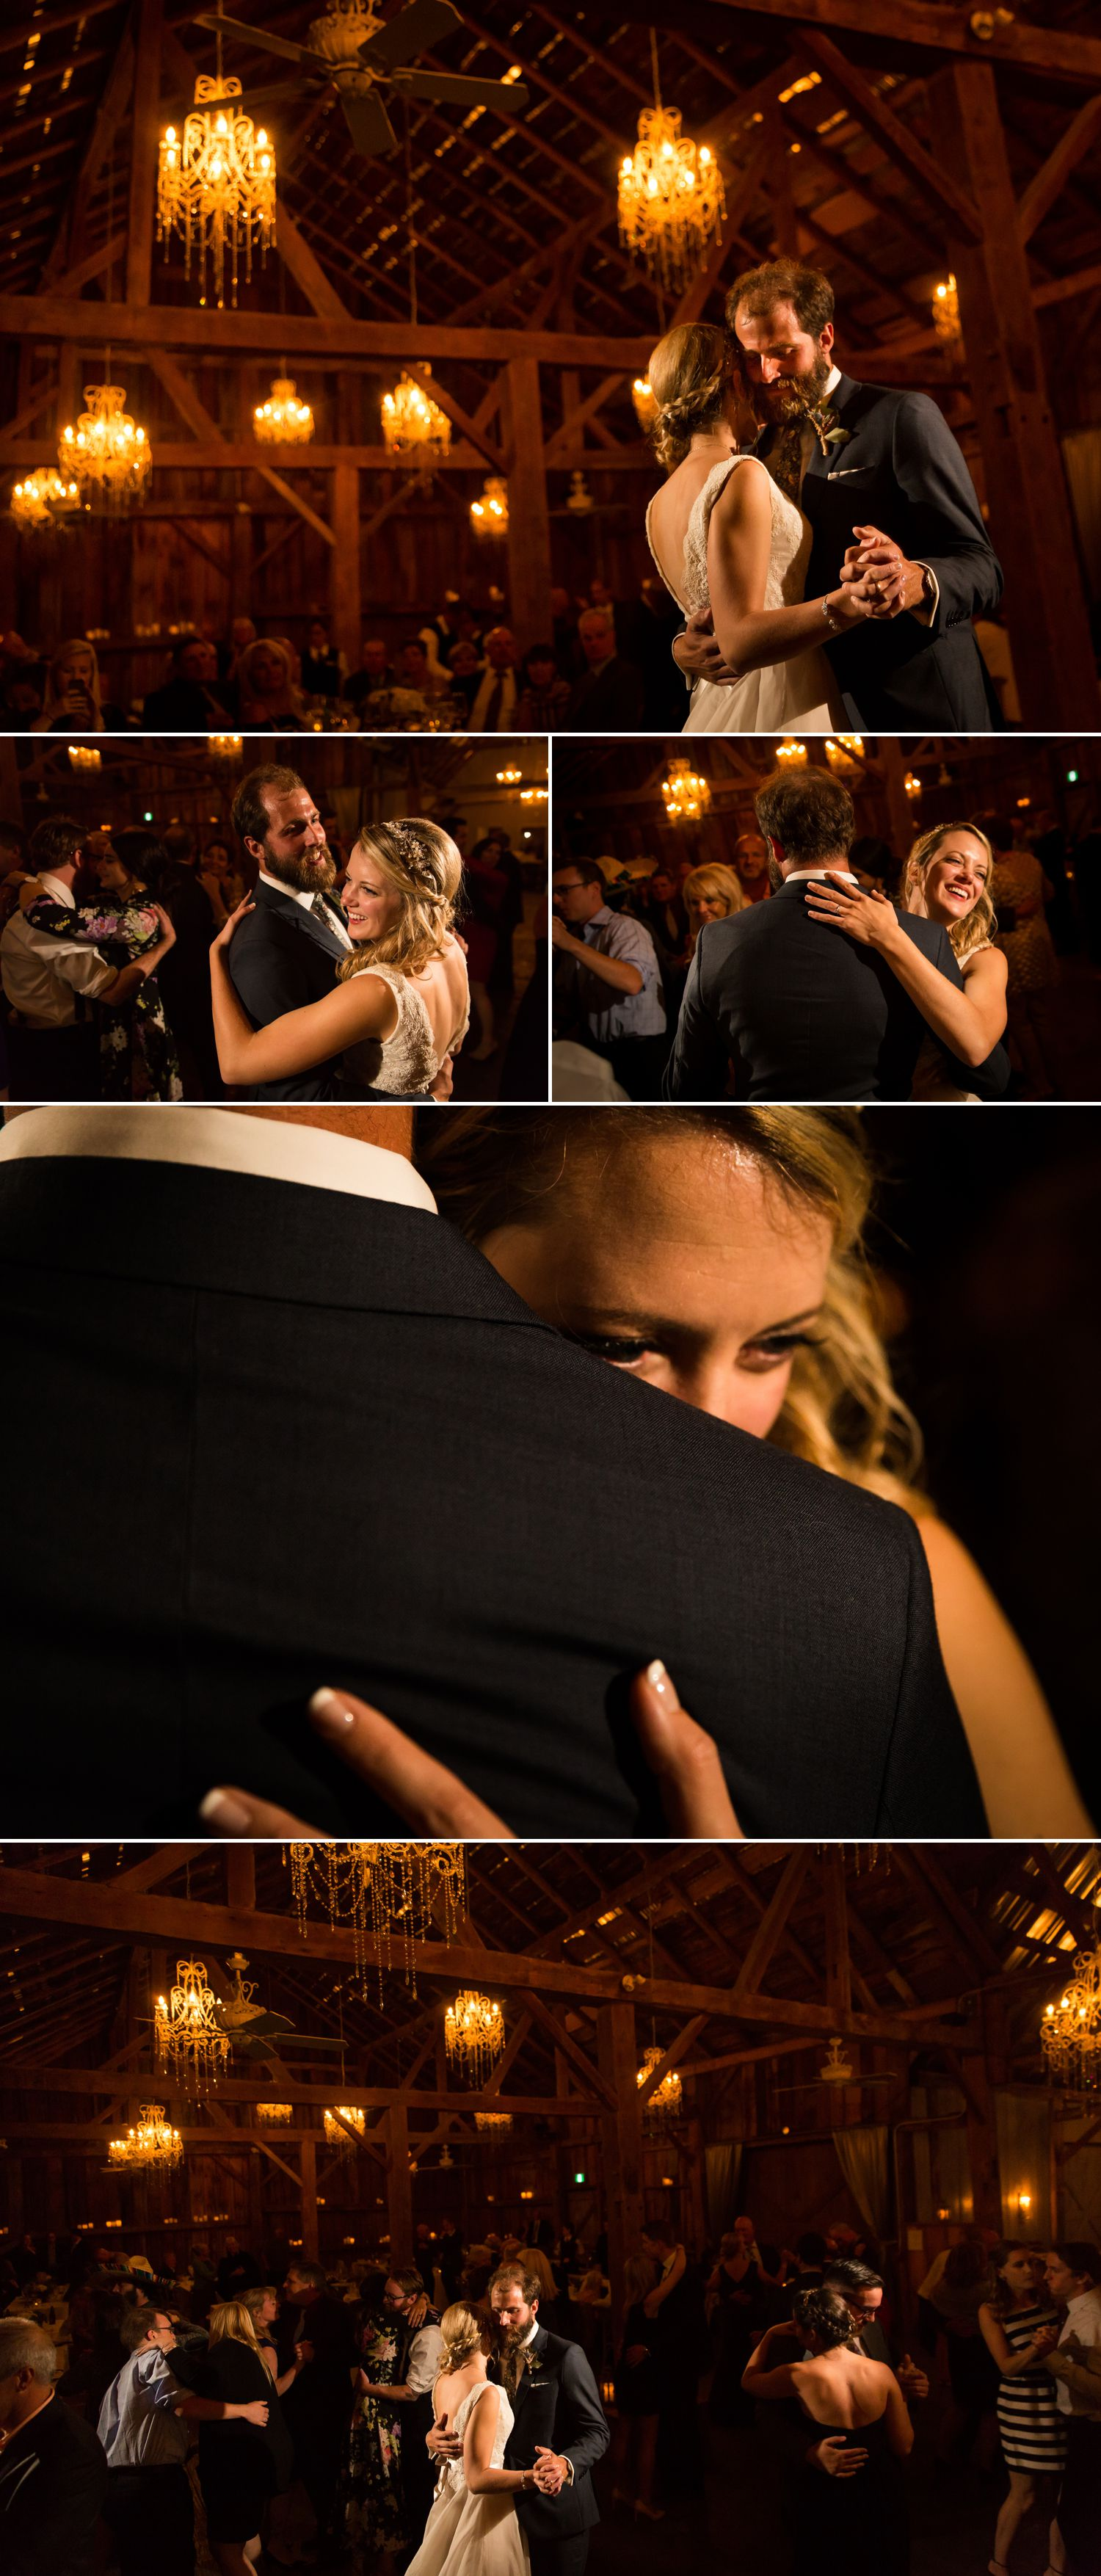 The bride and groom's first dance at the Evermore wedding